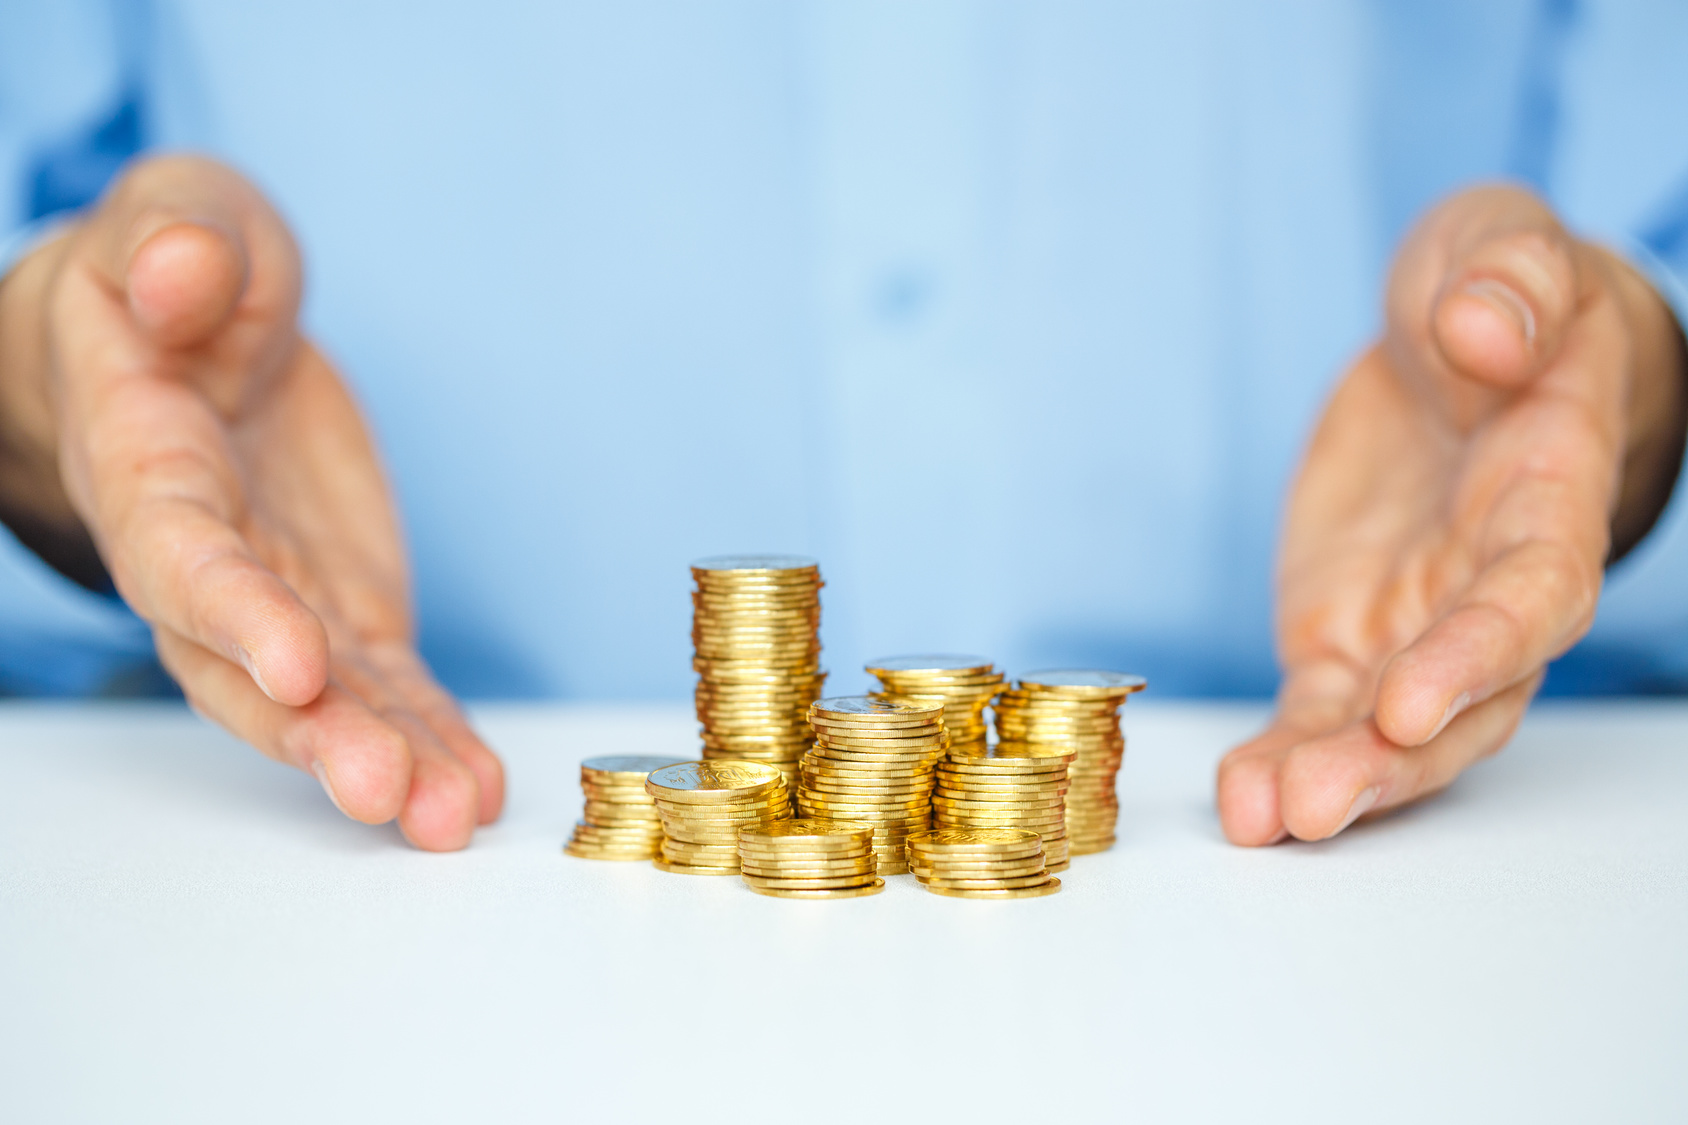 small-business-start-up-financing